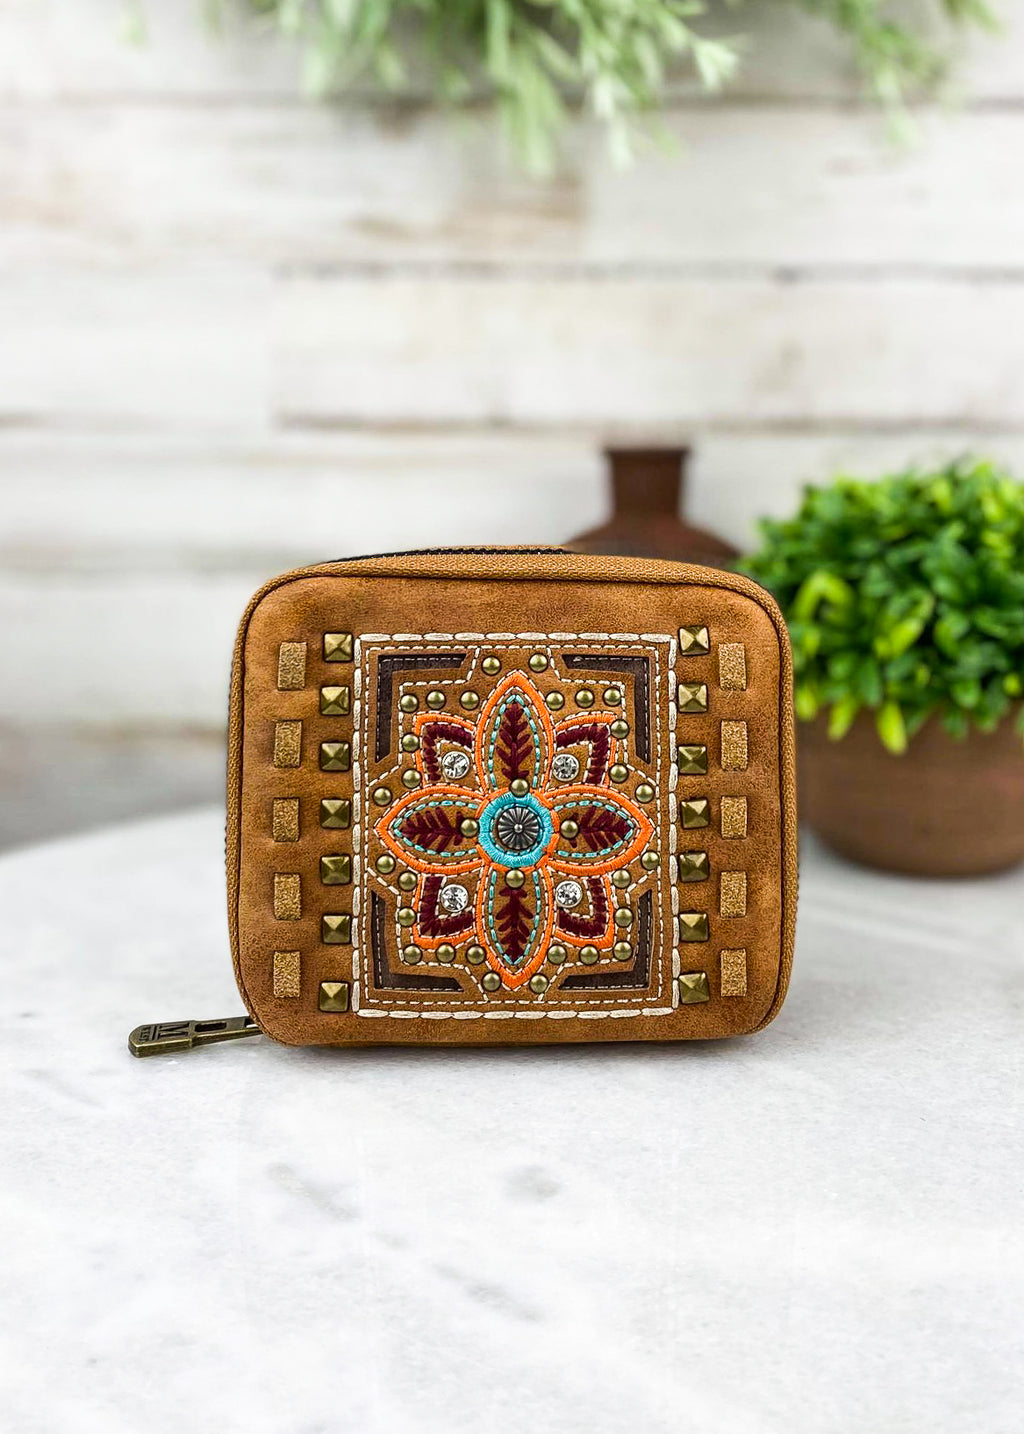 Small brown floral embroidered pill and accessory travel case with zip around closure and plain brown leather on back taken inside on white table with green floral décor